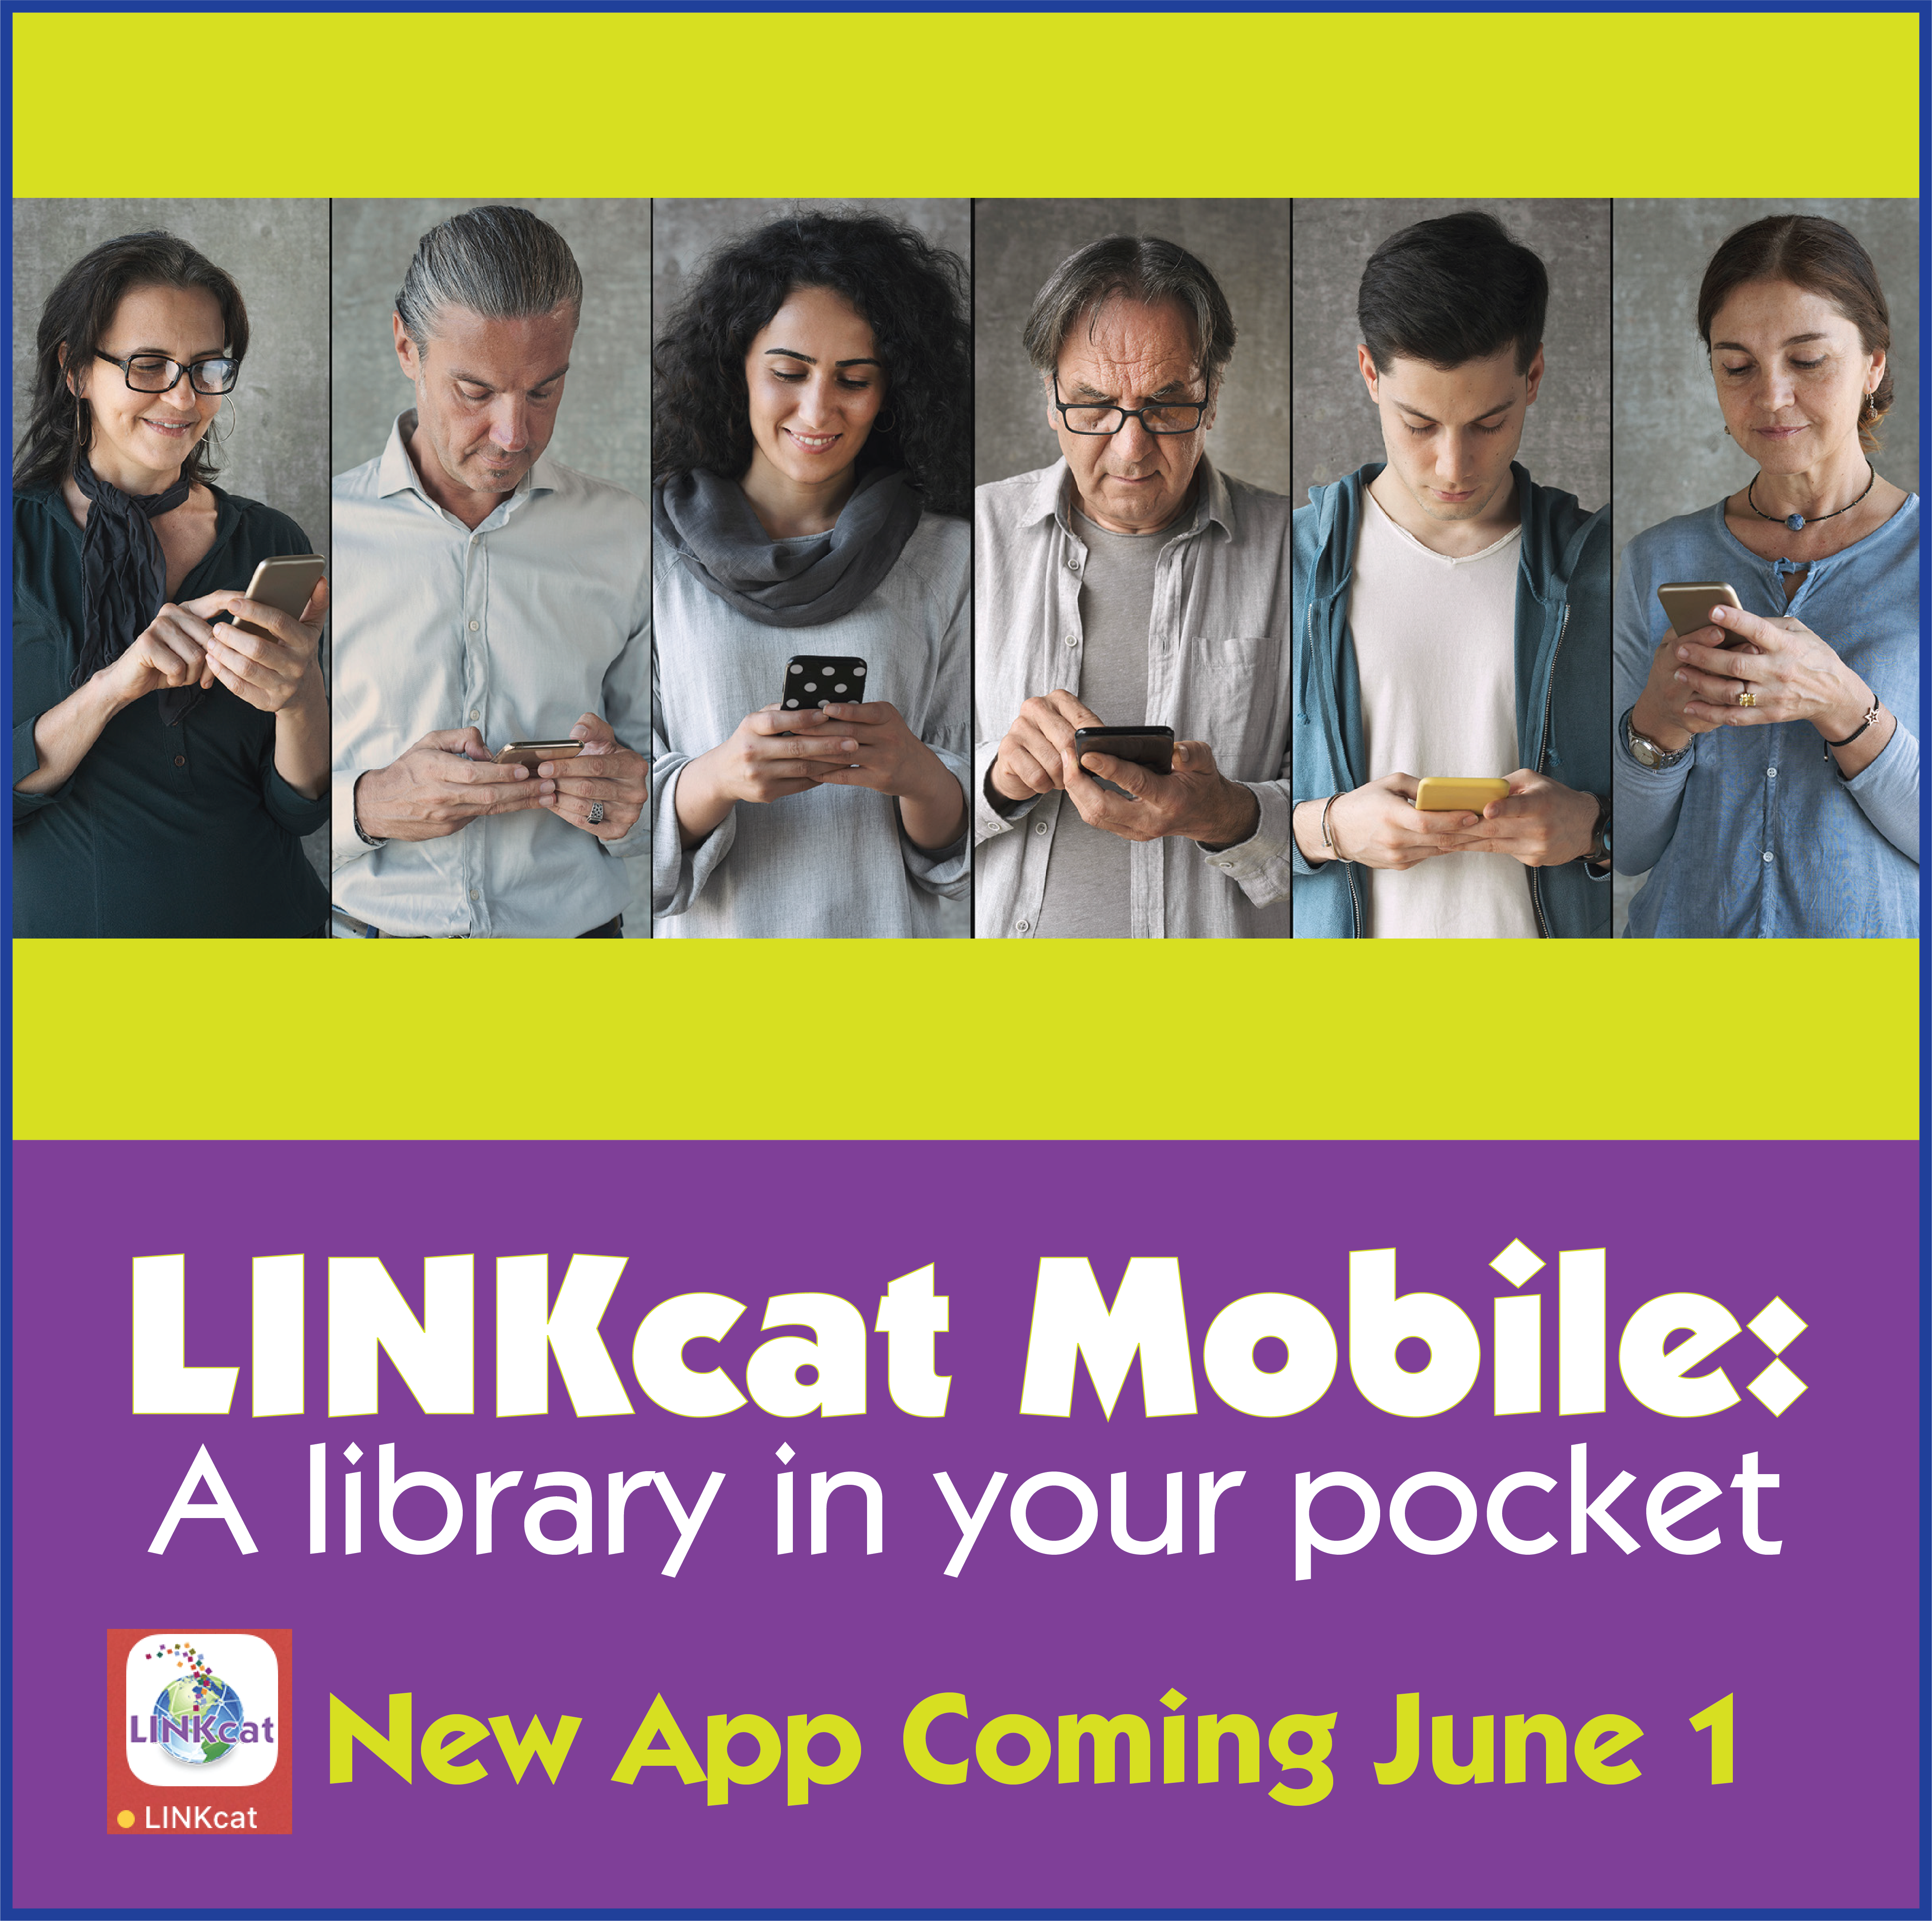 LINKcat Mobile: A library in your pocket. New App coming June 1.